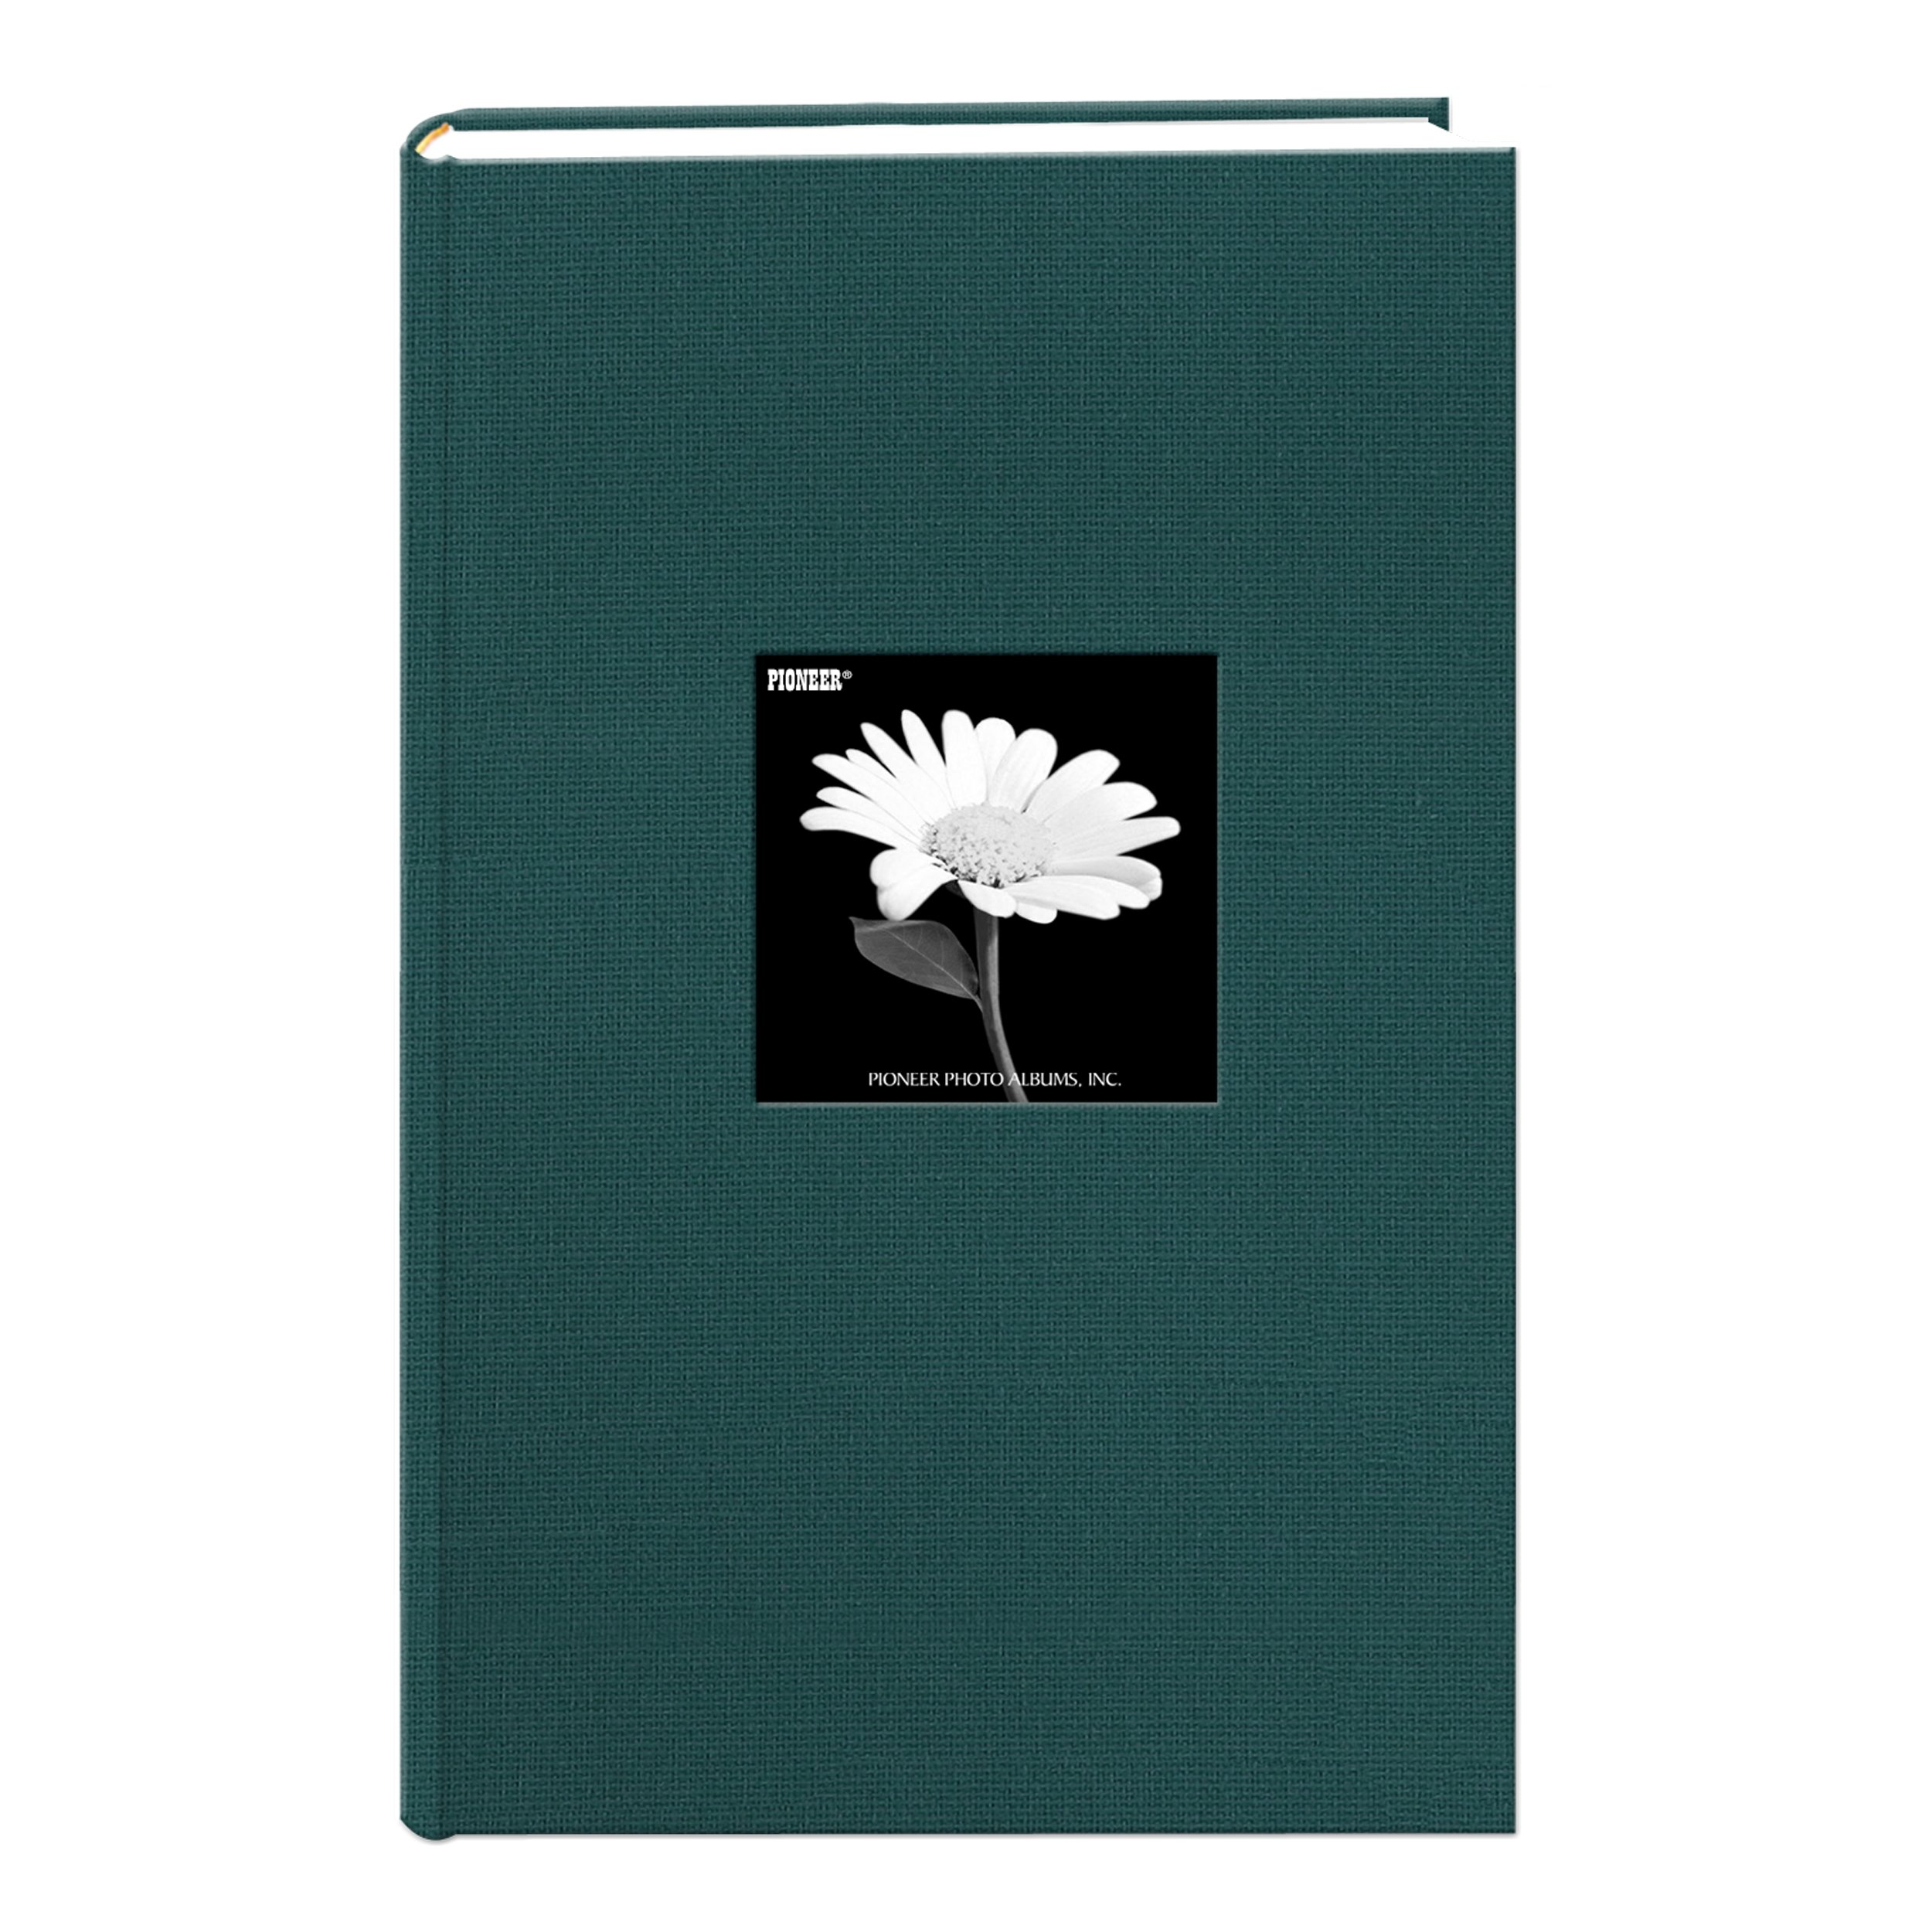 Fabric Frame Cover Photo Album 300 Pockets Hold 4x6 Photos, Majestic Teal by Pioneer Photo Albums